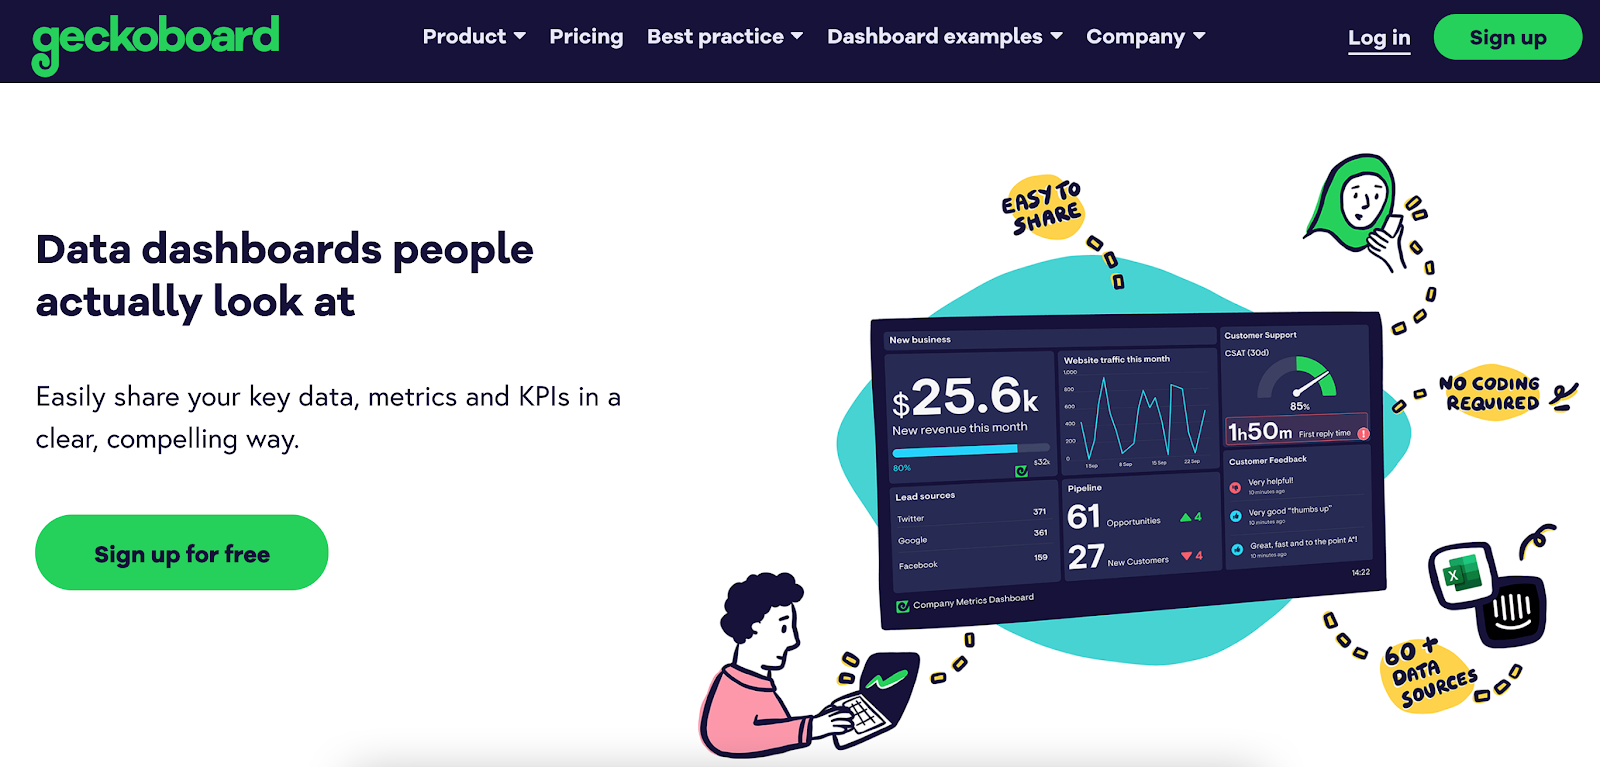 How to design a dashboard?